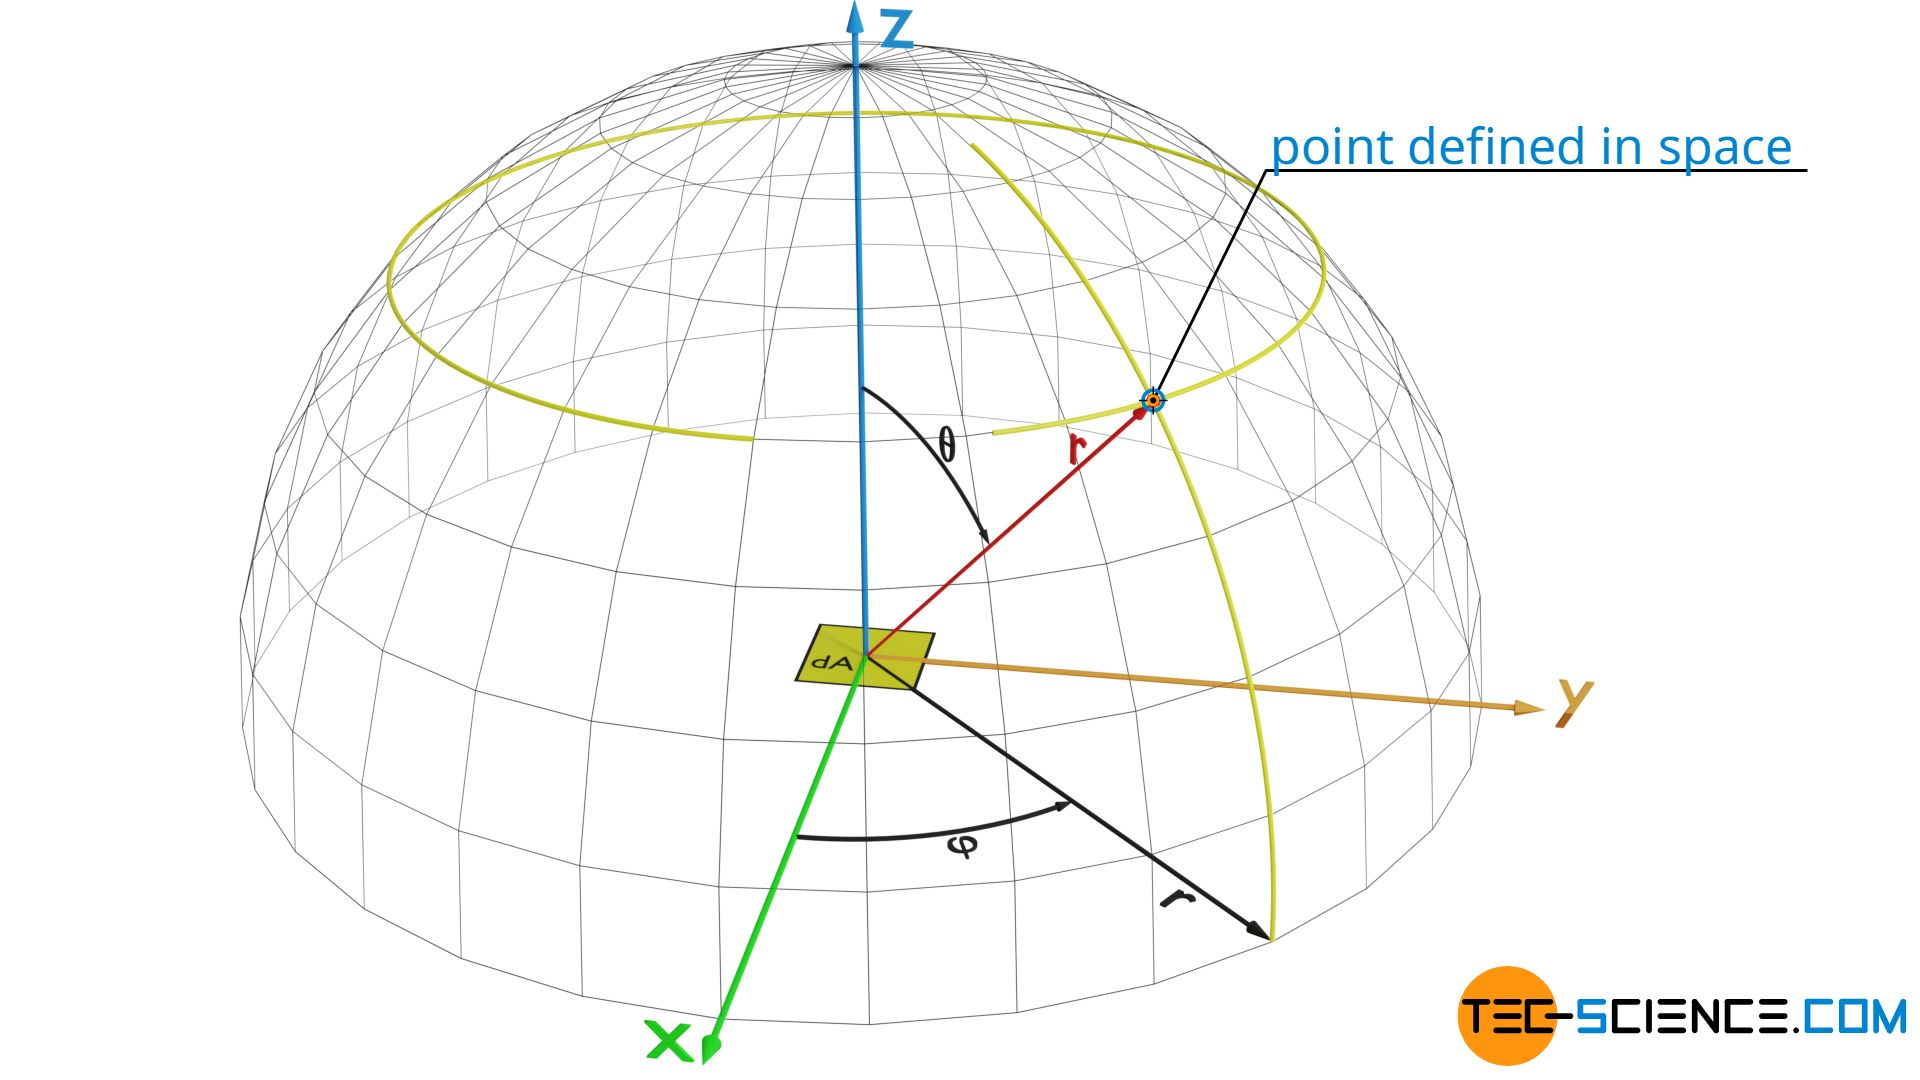 Defining a point in space with spherical coordinates